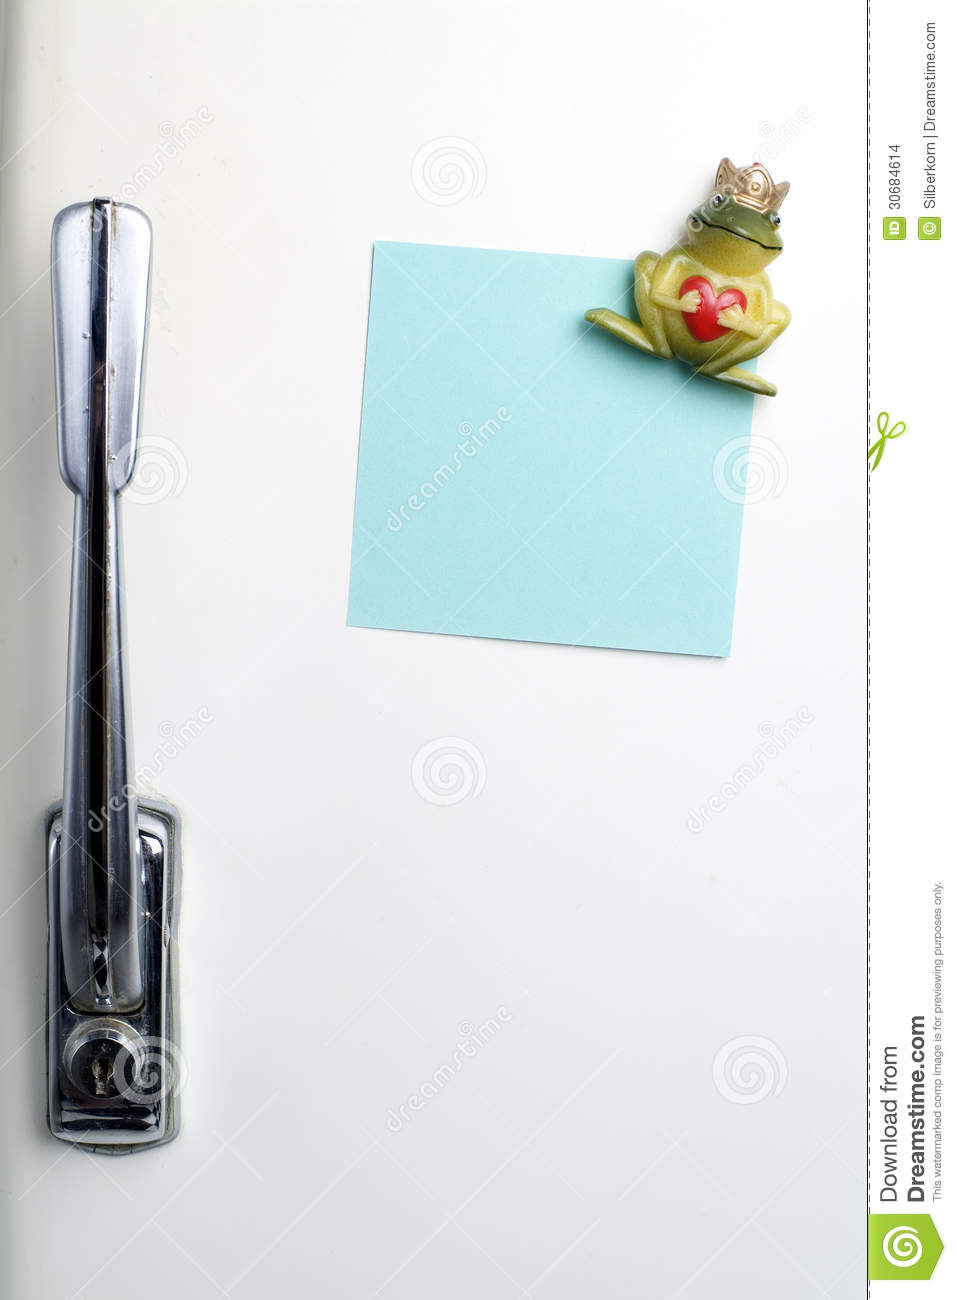 Blank Note On Fifties Fridge-door, Close-up Of Frog With ...